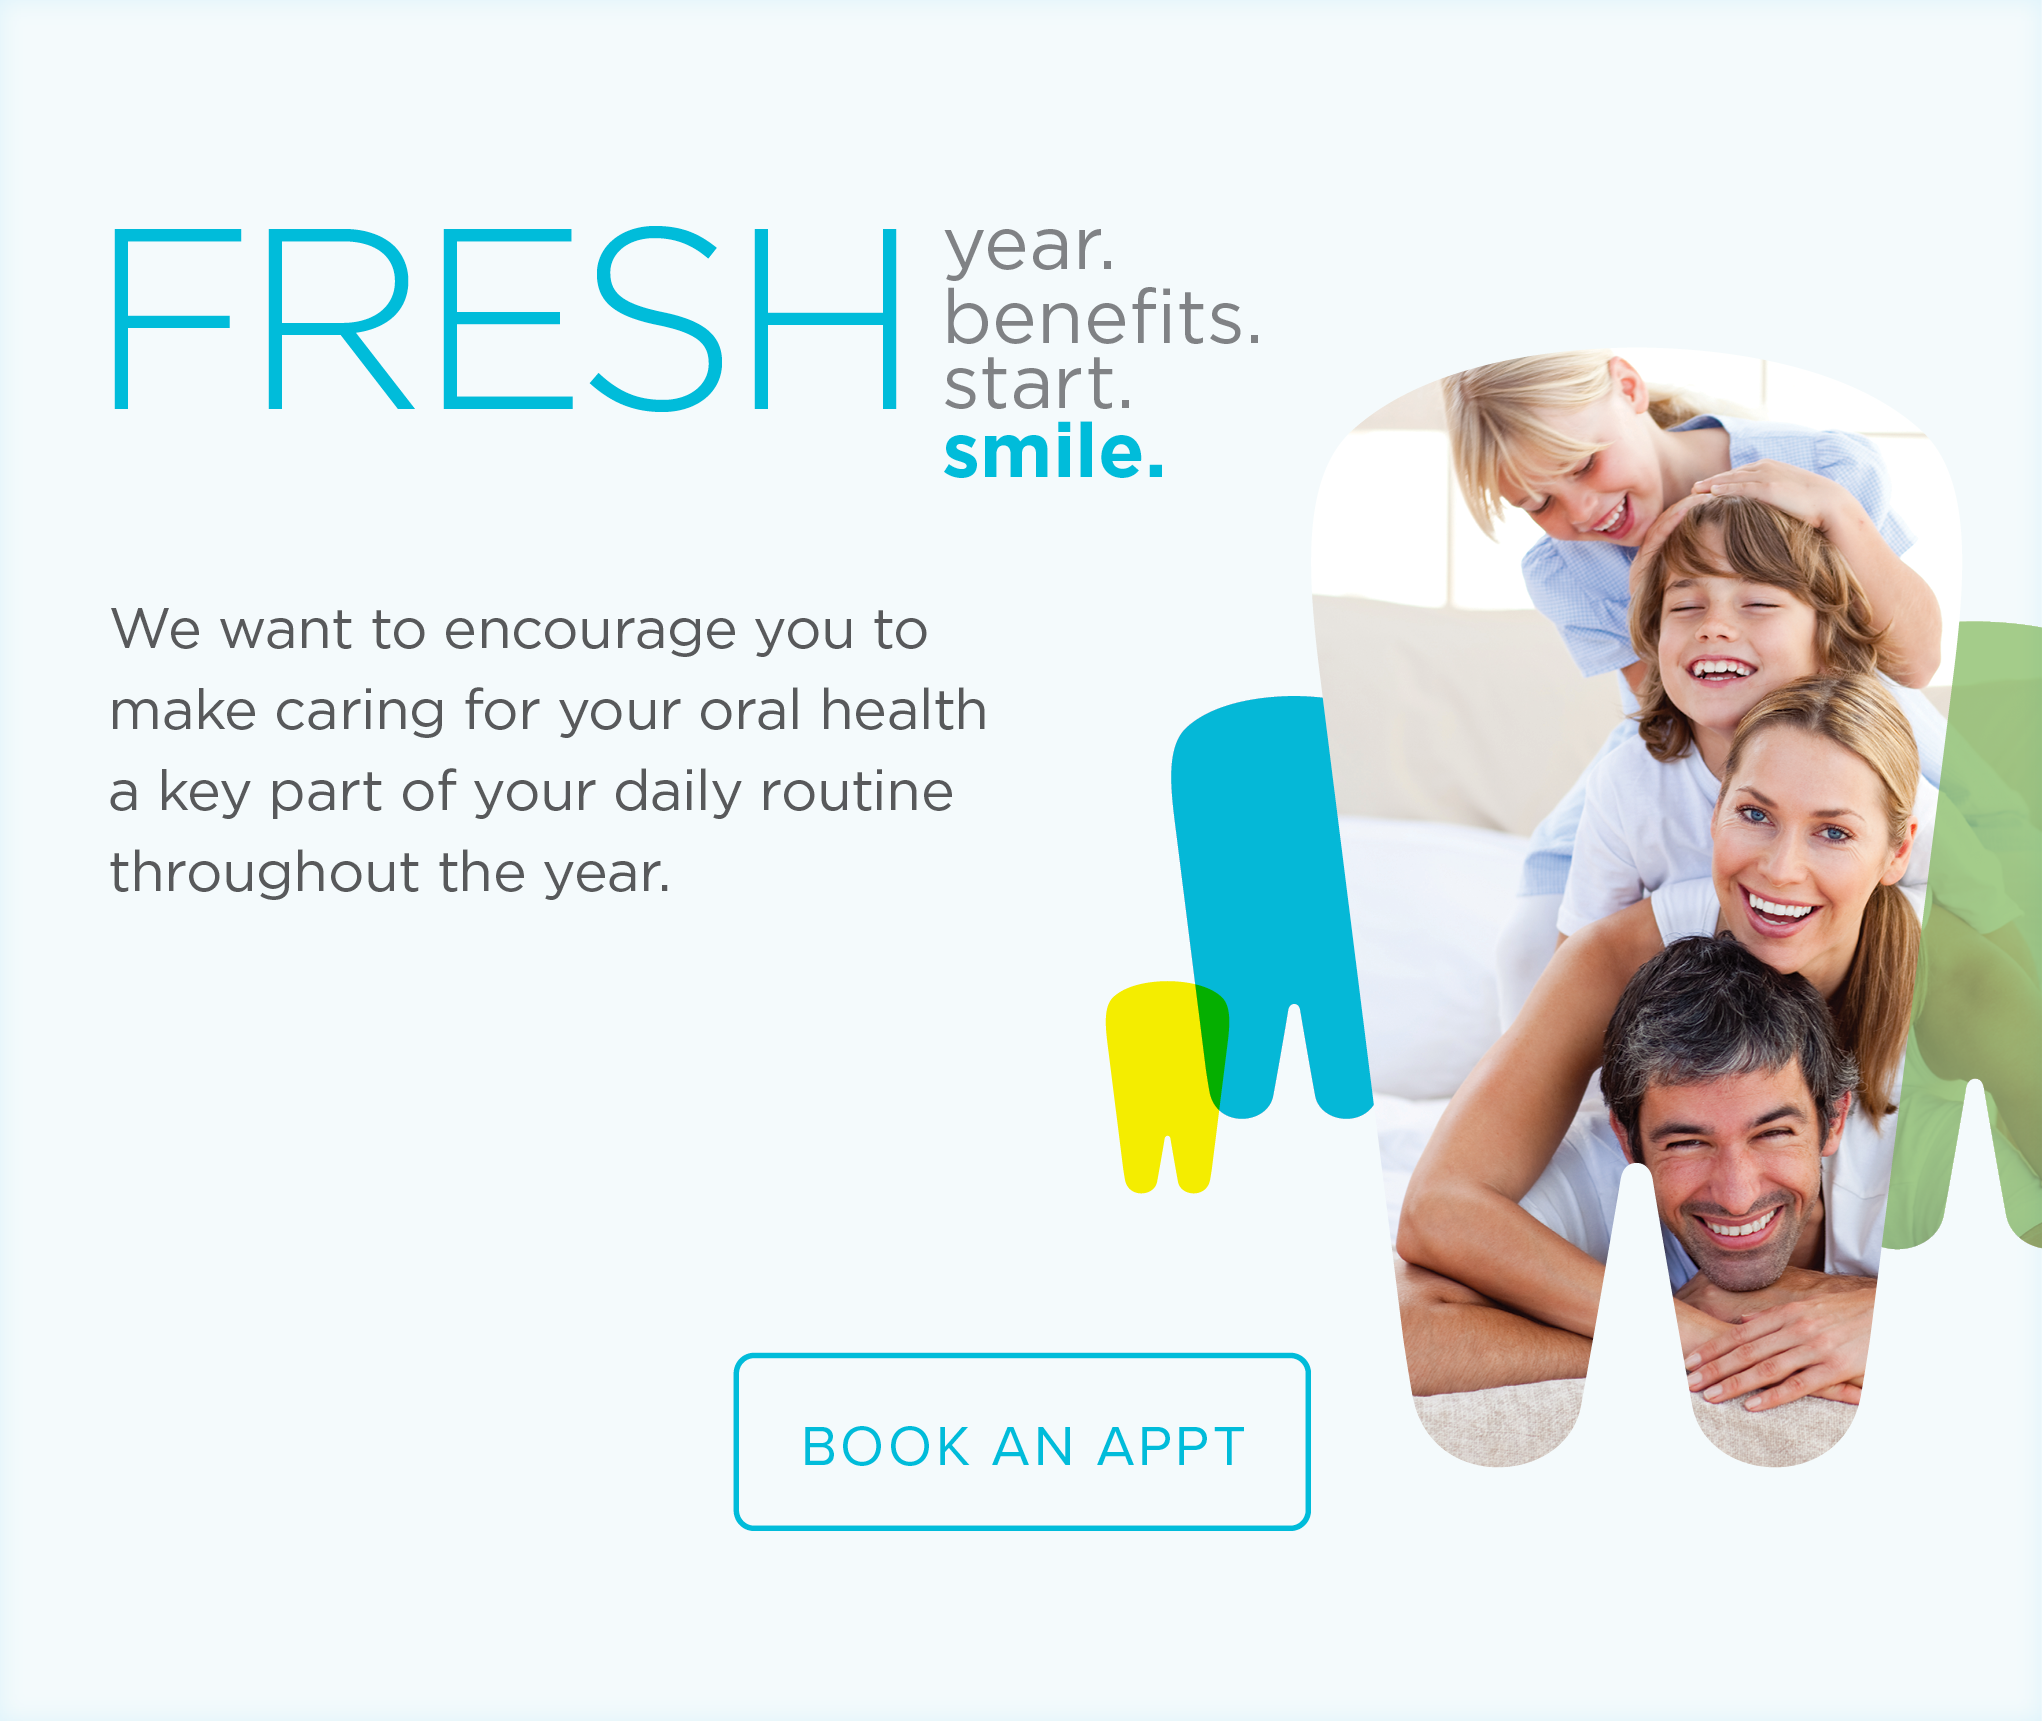 Clear Lake Modern Dentistry and Orthodontics - Make the Most of Your Benefits